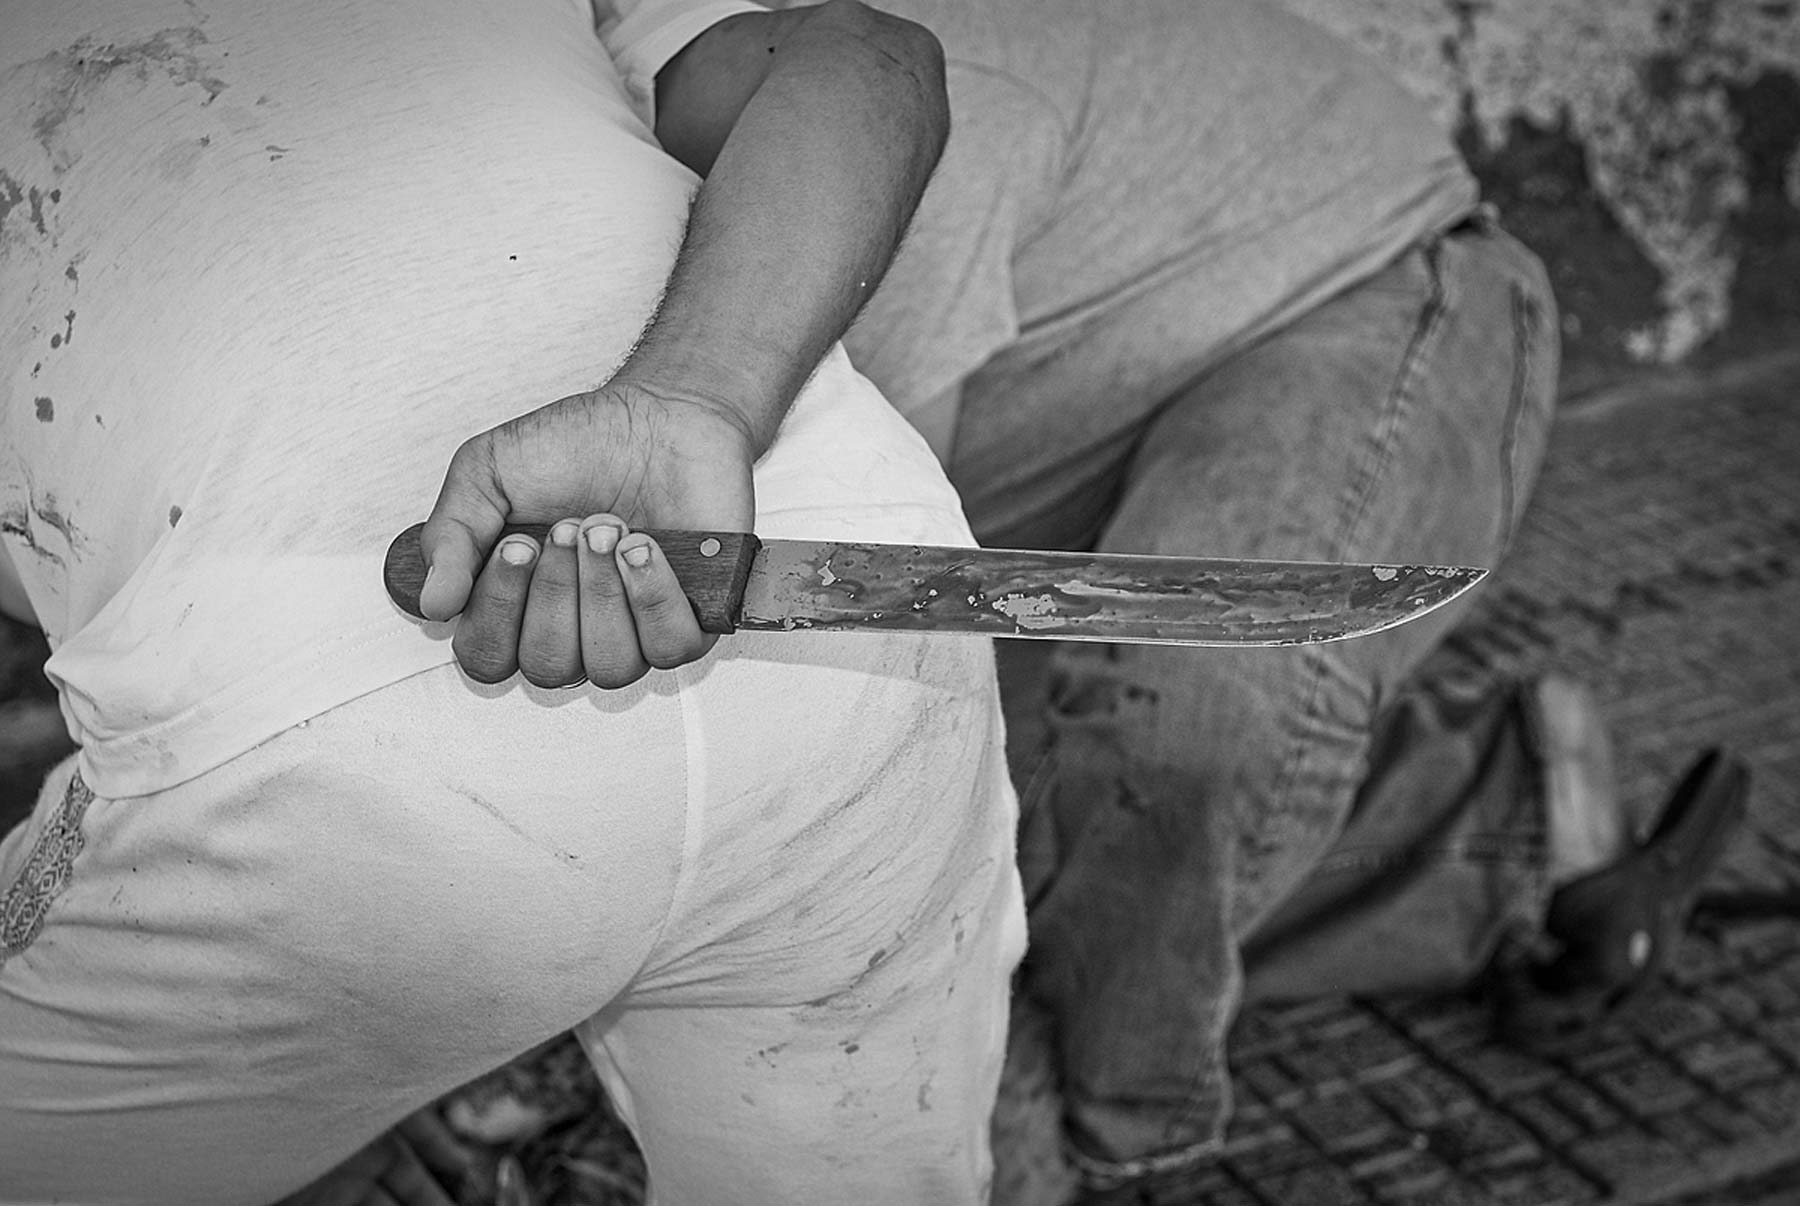 Knife at the ready, a man helps restrain an animal before cutting her throat